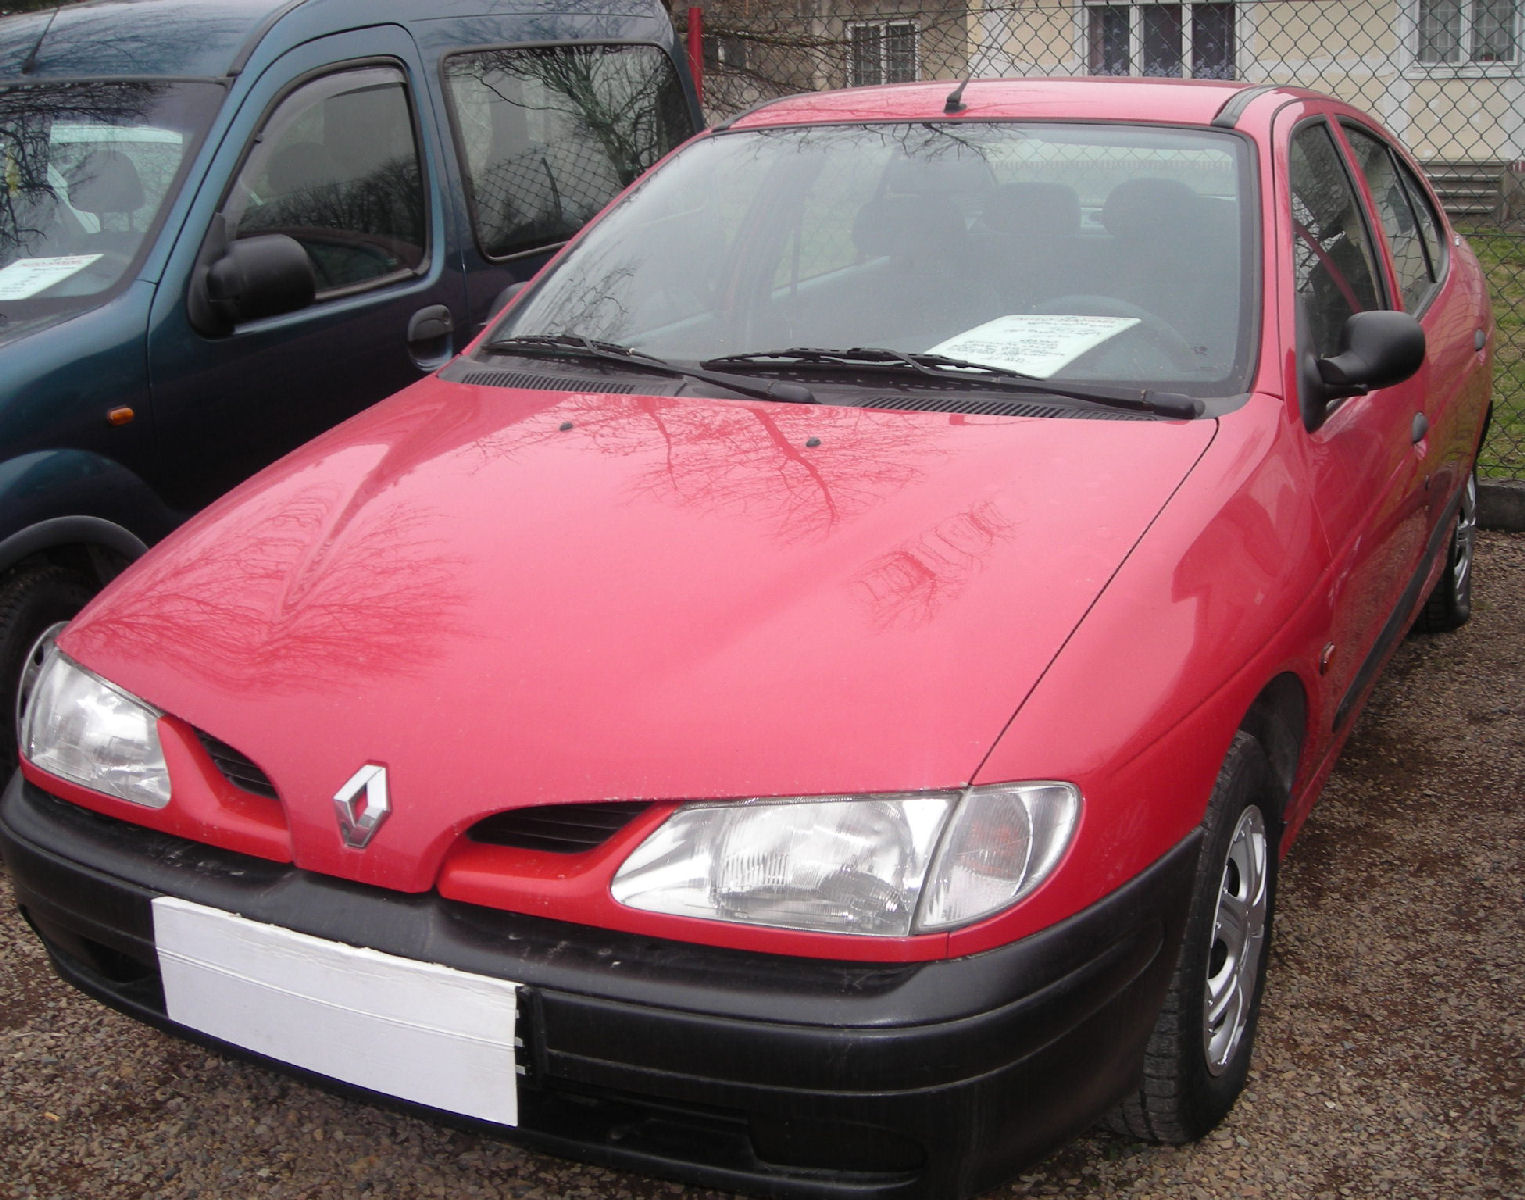 rouge avg Renault Classic 1997